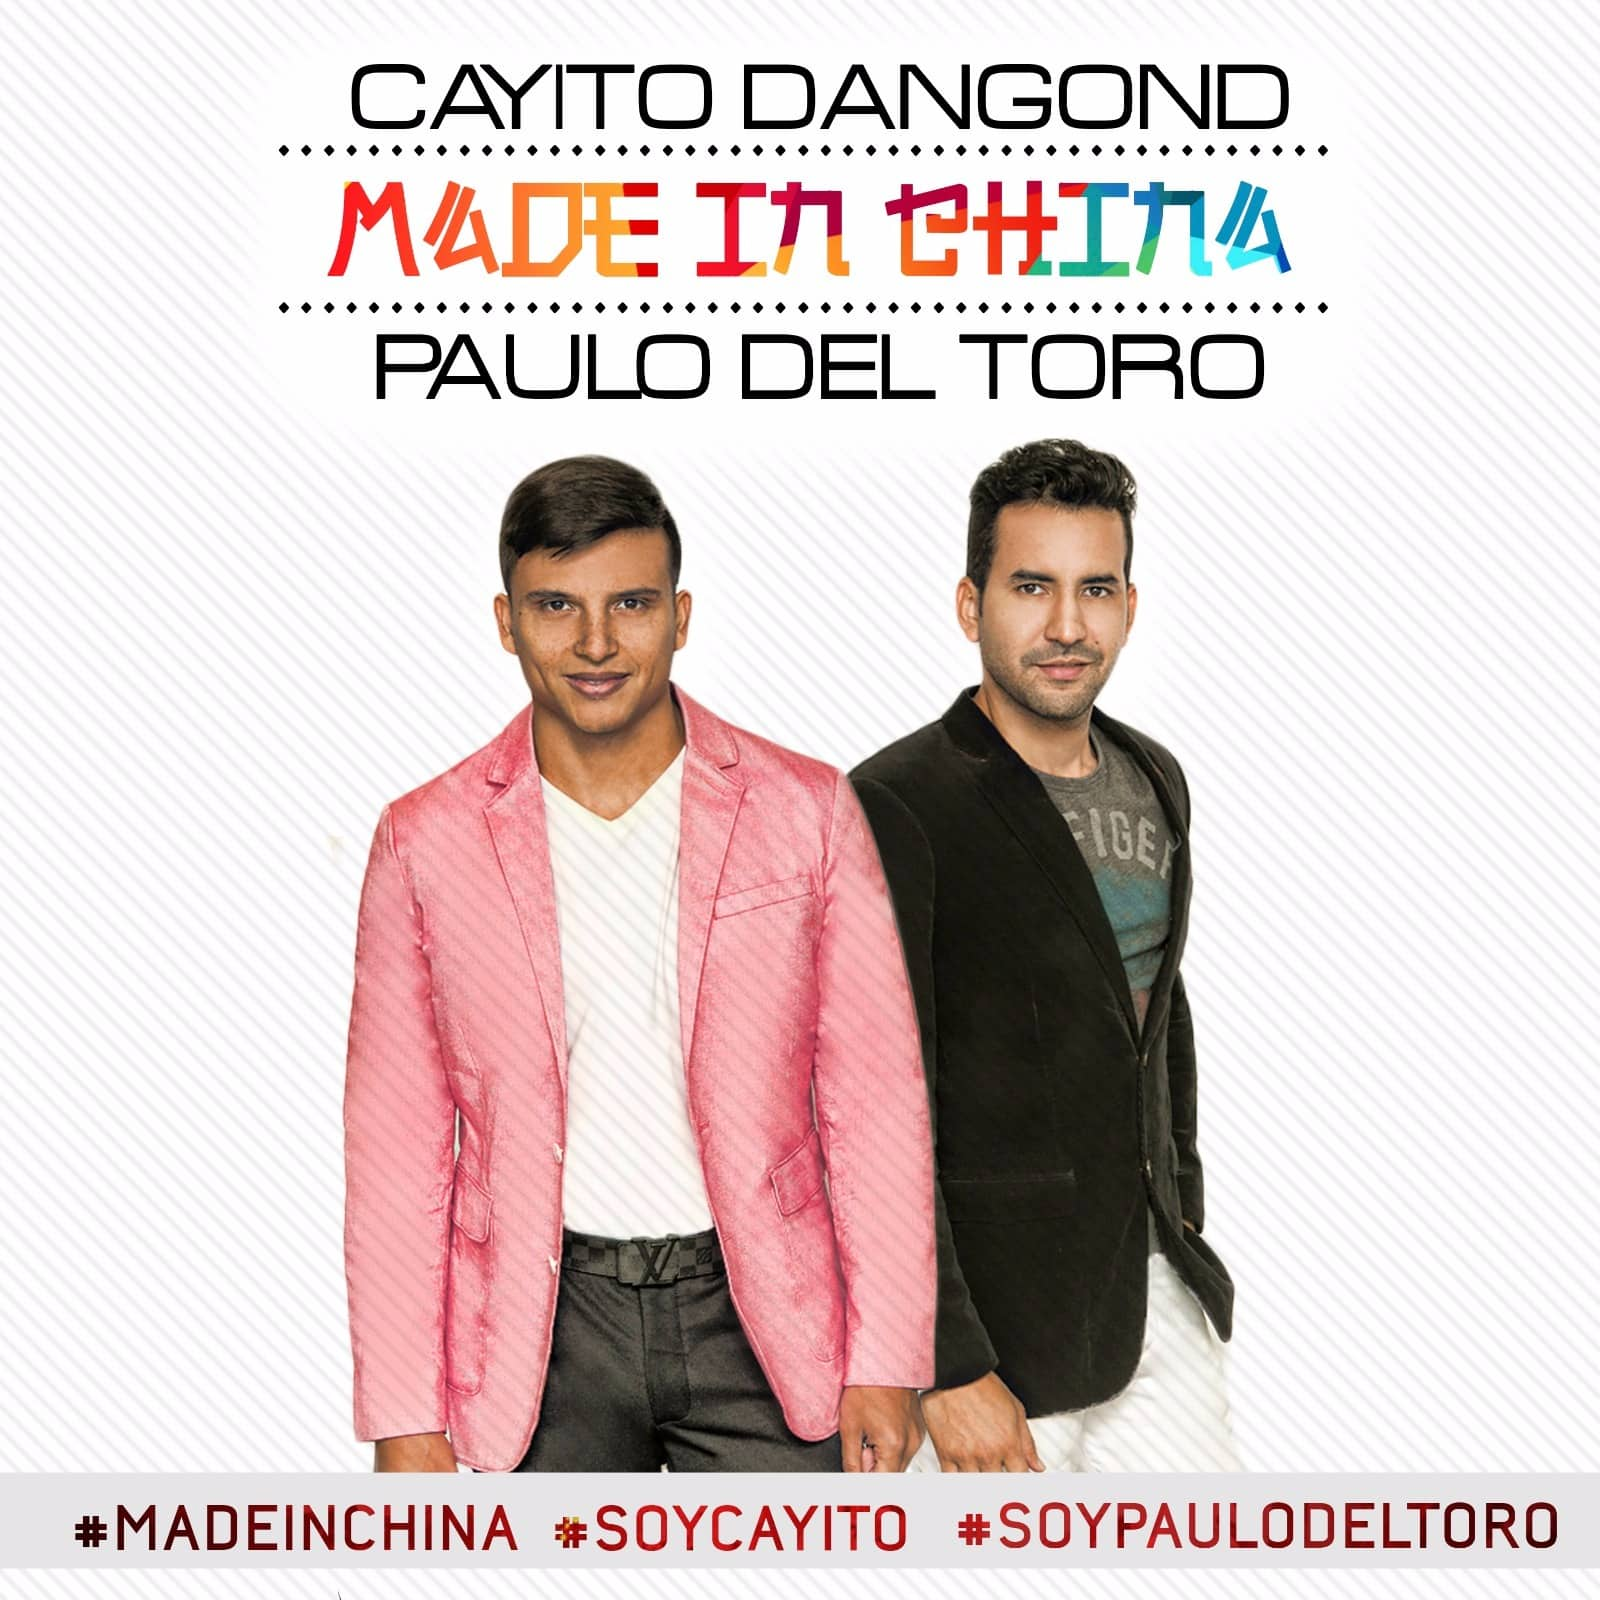 Descarga Made in China lo nuevo de Cayito Dangond & Paulo del Toro